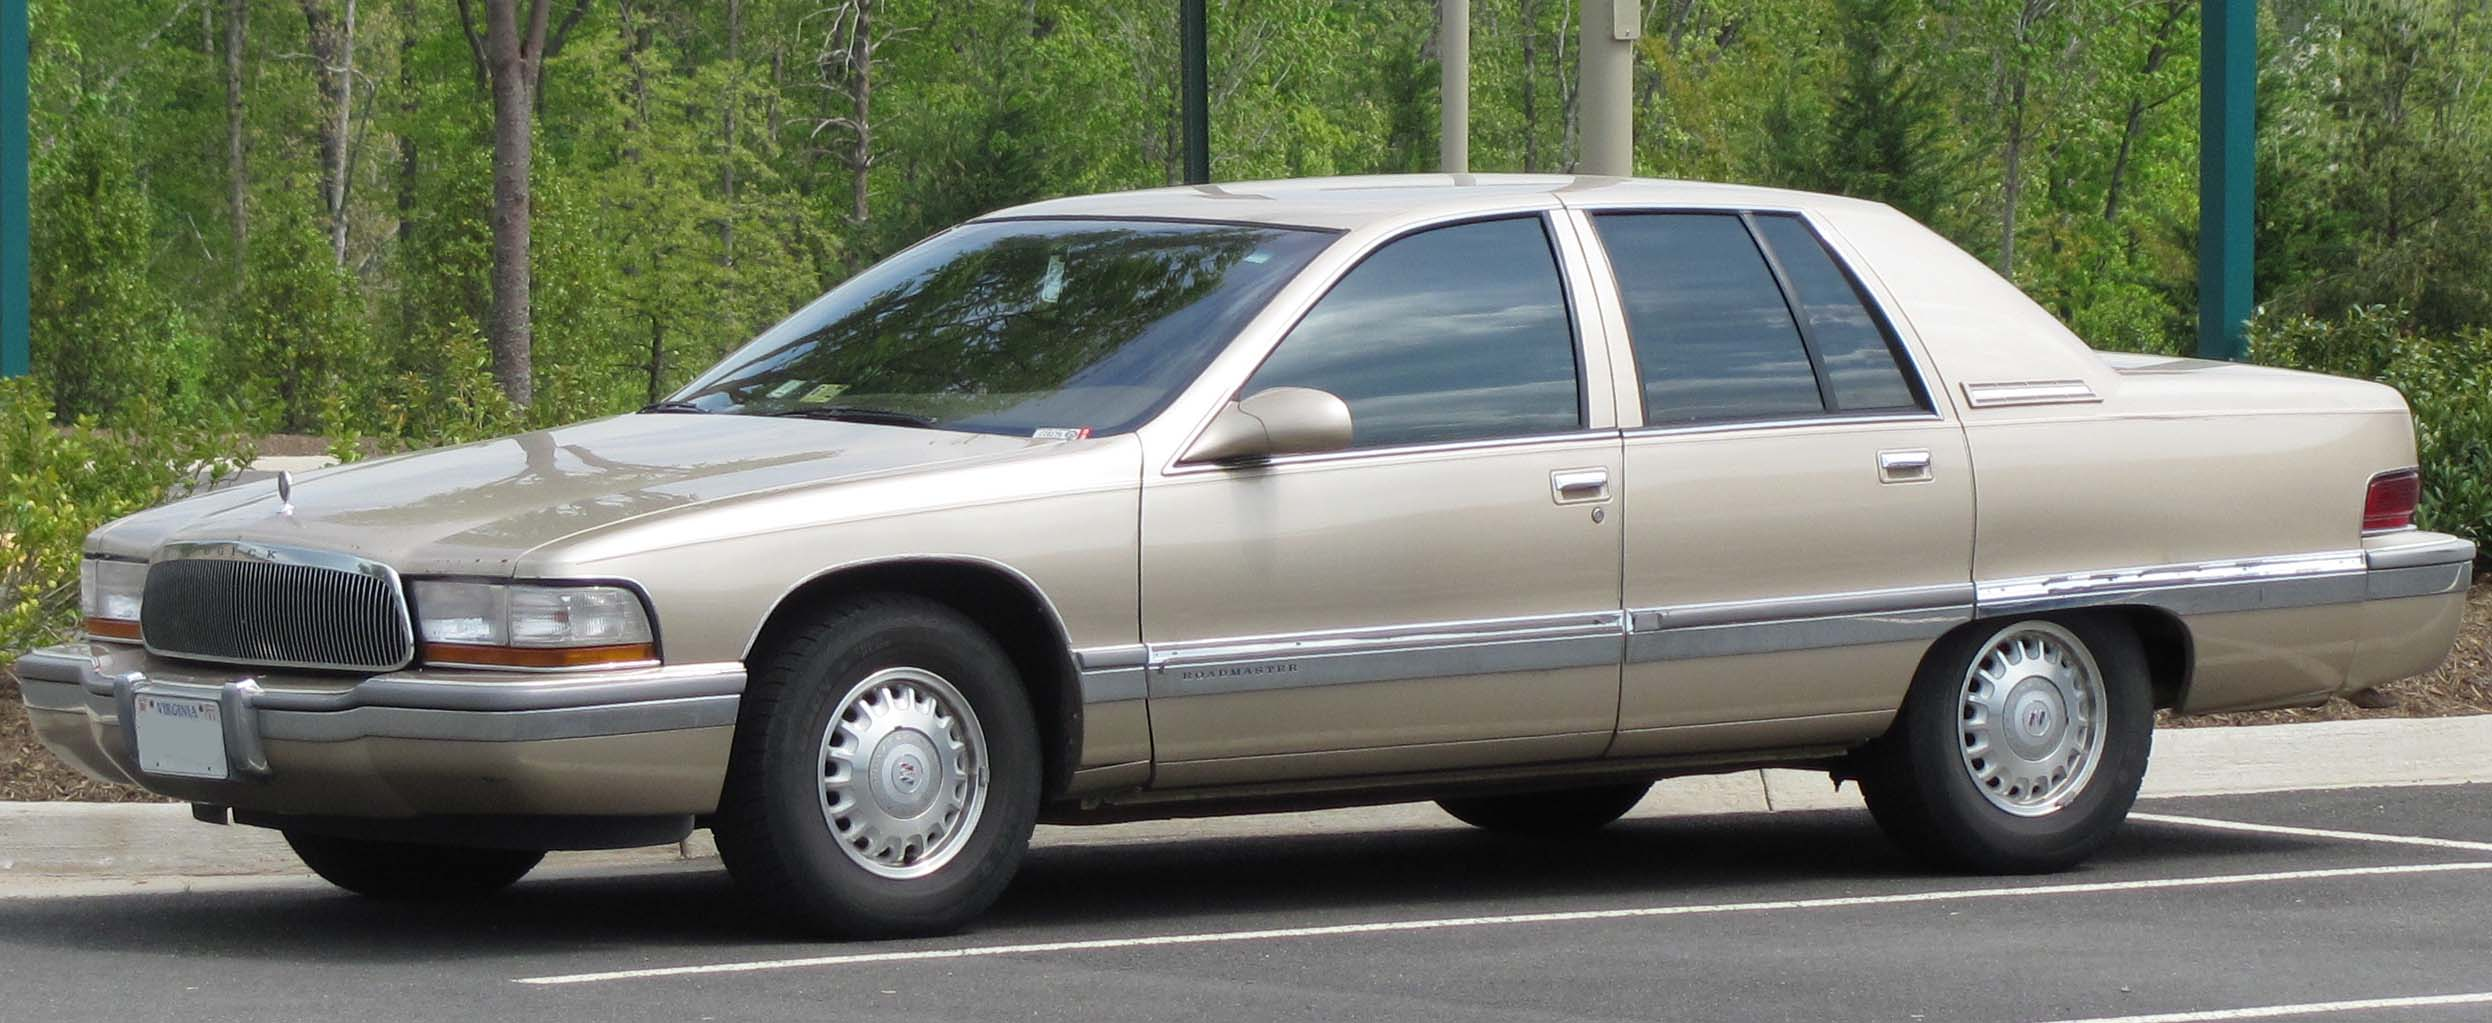 buick roadmaster pictures #4